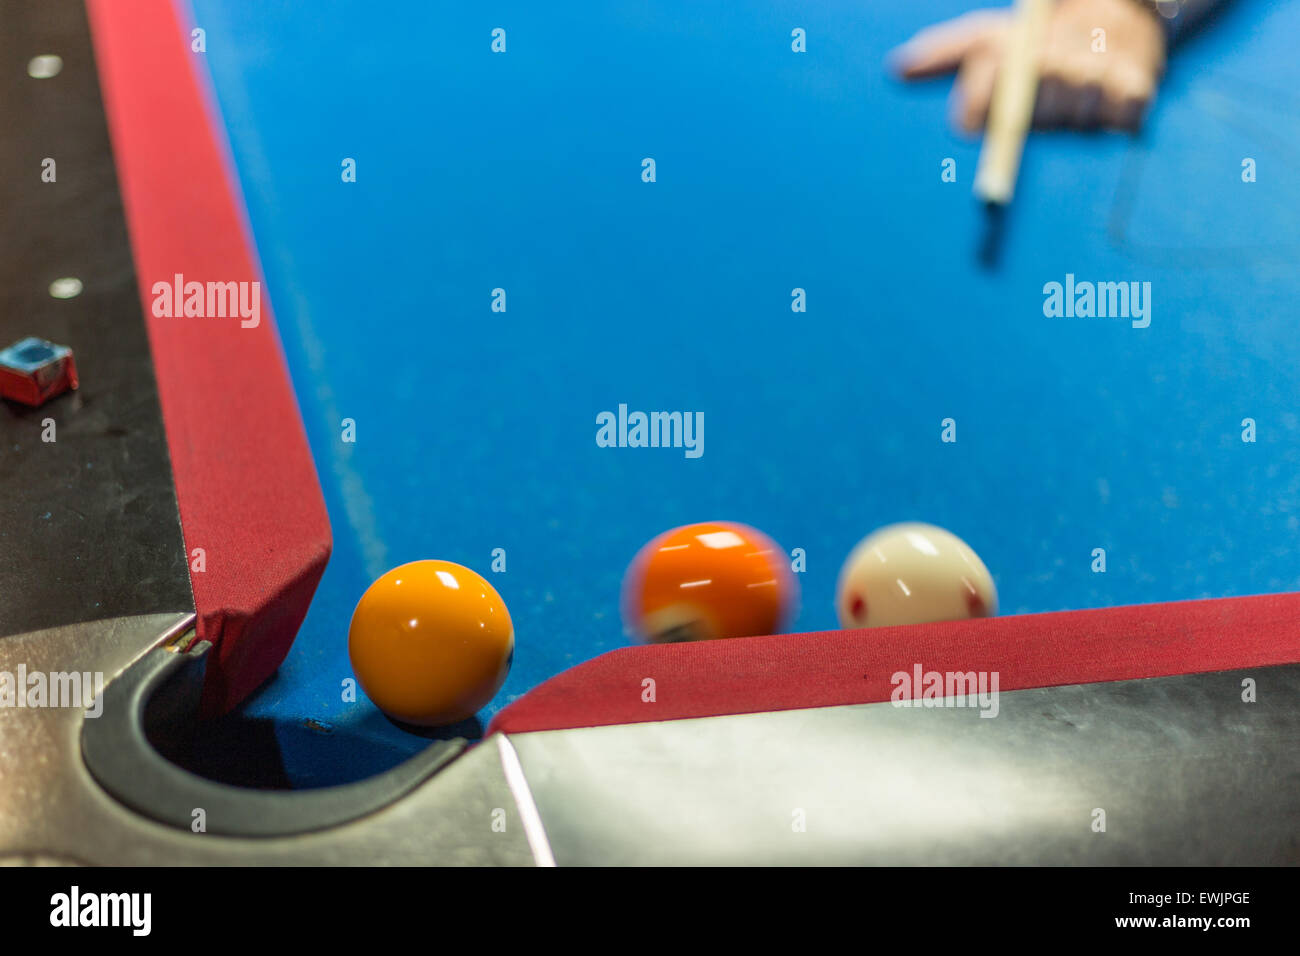 Ball Near Corner Pocket Of A Pool Table Motion Blur On Balls Stock - Pool table near by